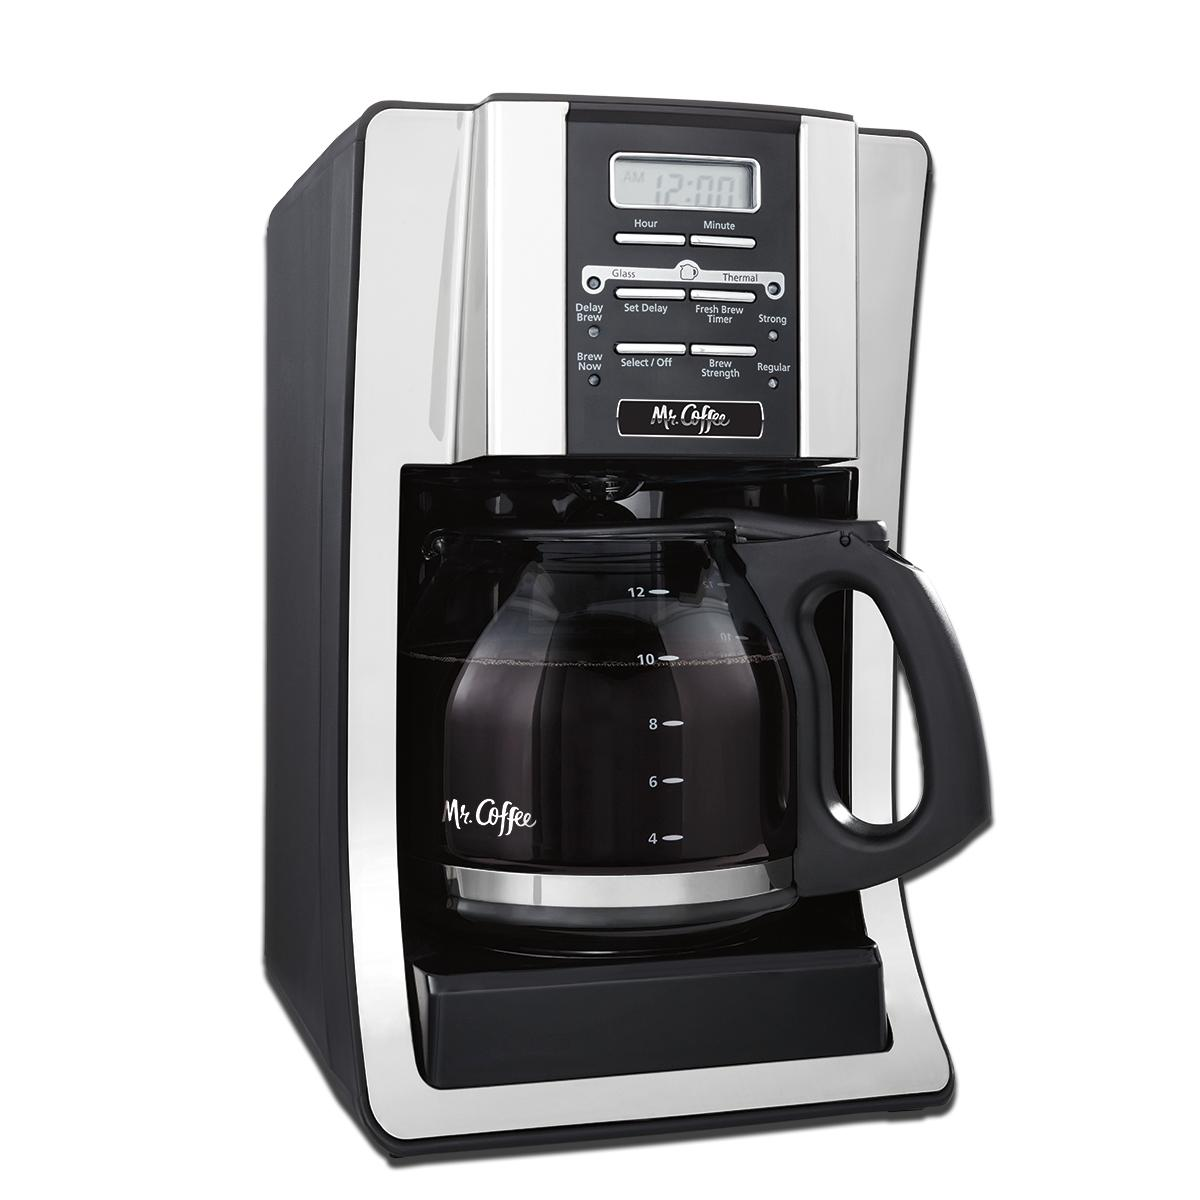 cuisinart 14 cup coffee maker manual